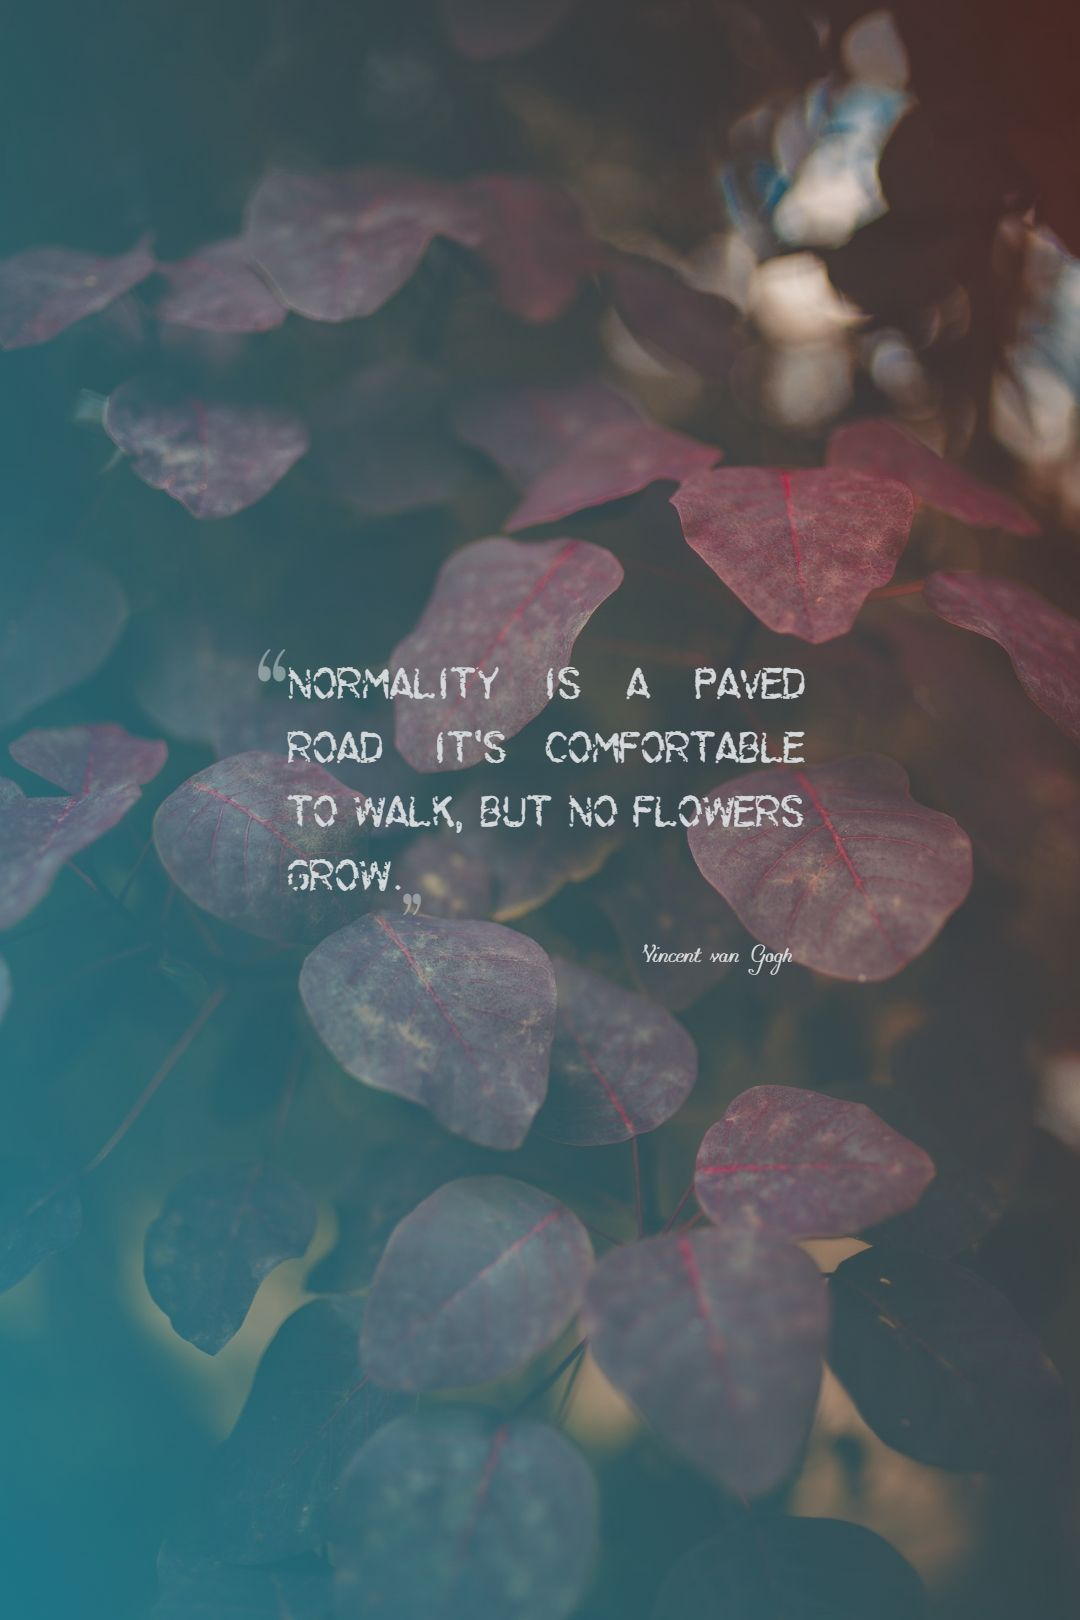 Quotes image of Normality is a paved road: It's comfortable to walk, but no flowers grow.